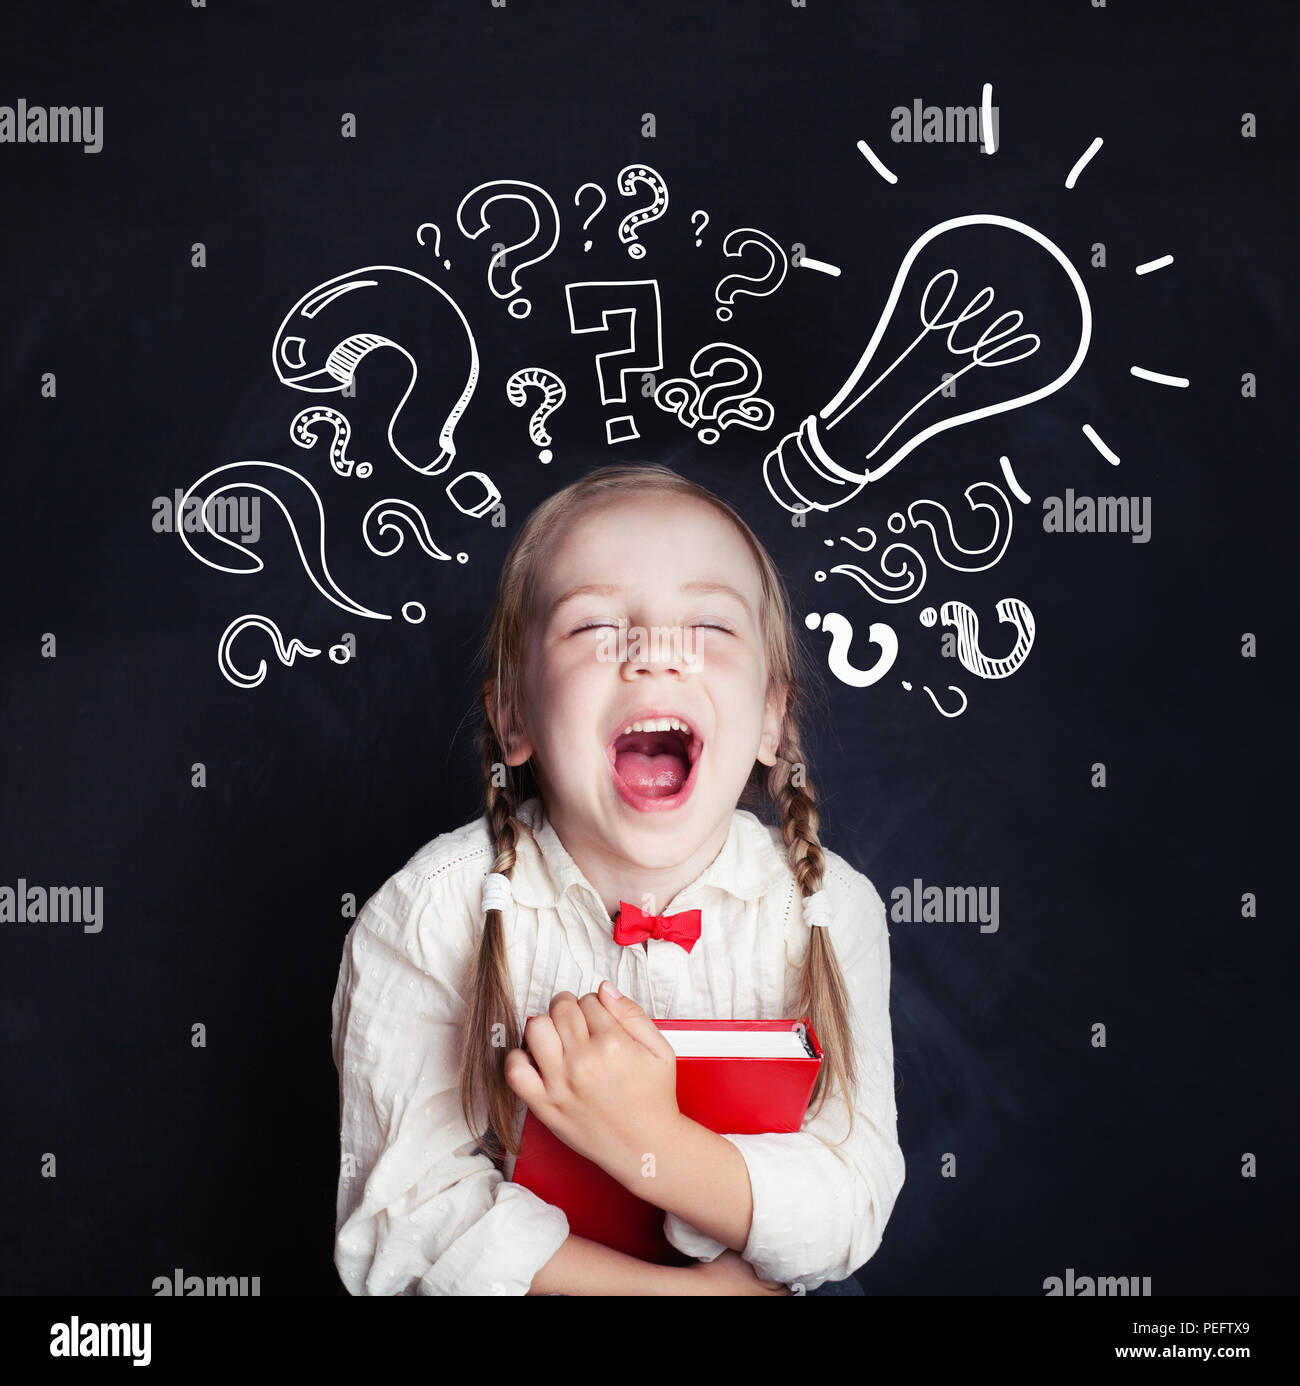 Little genius portrait. Kids education and ideas concept. Little girl with lightbulb and question marks - Stock Image